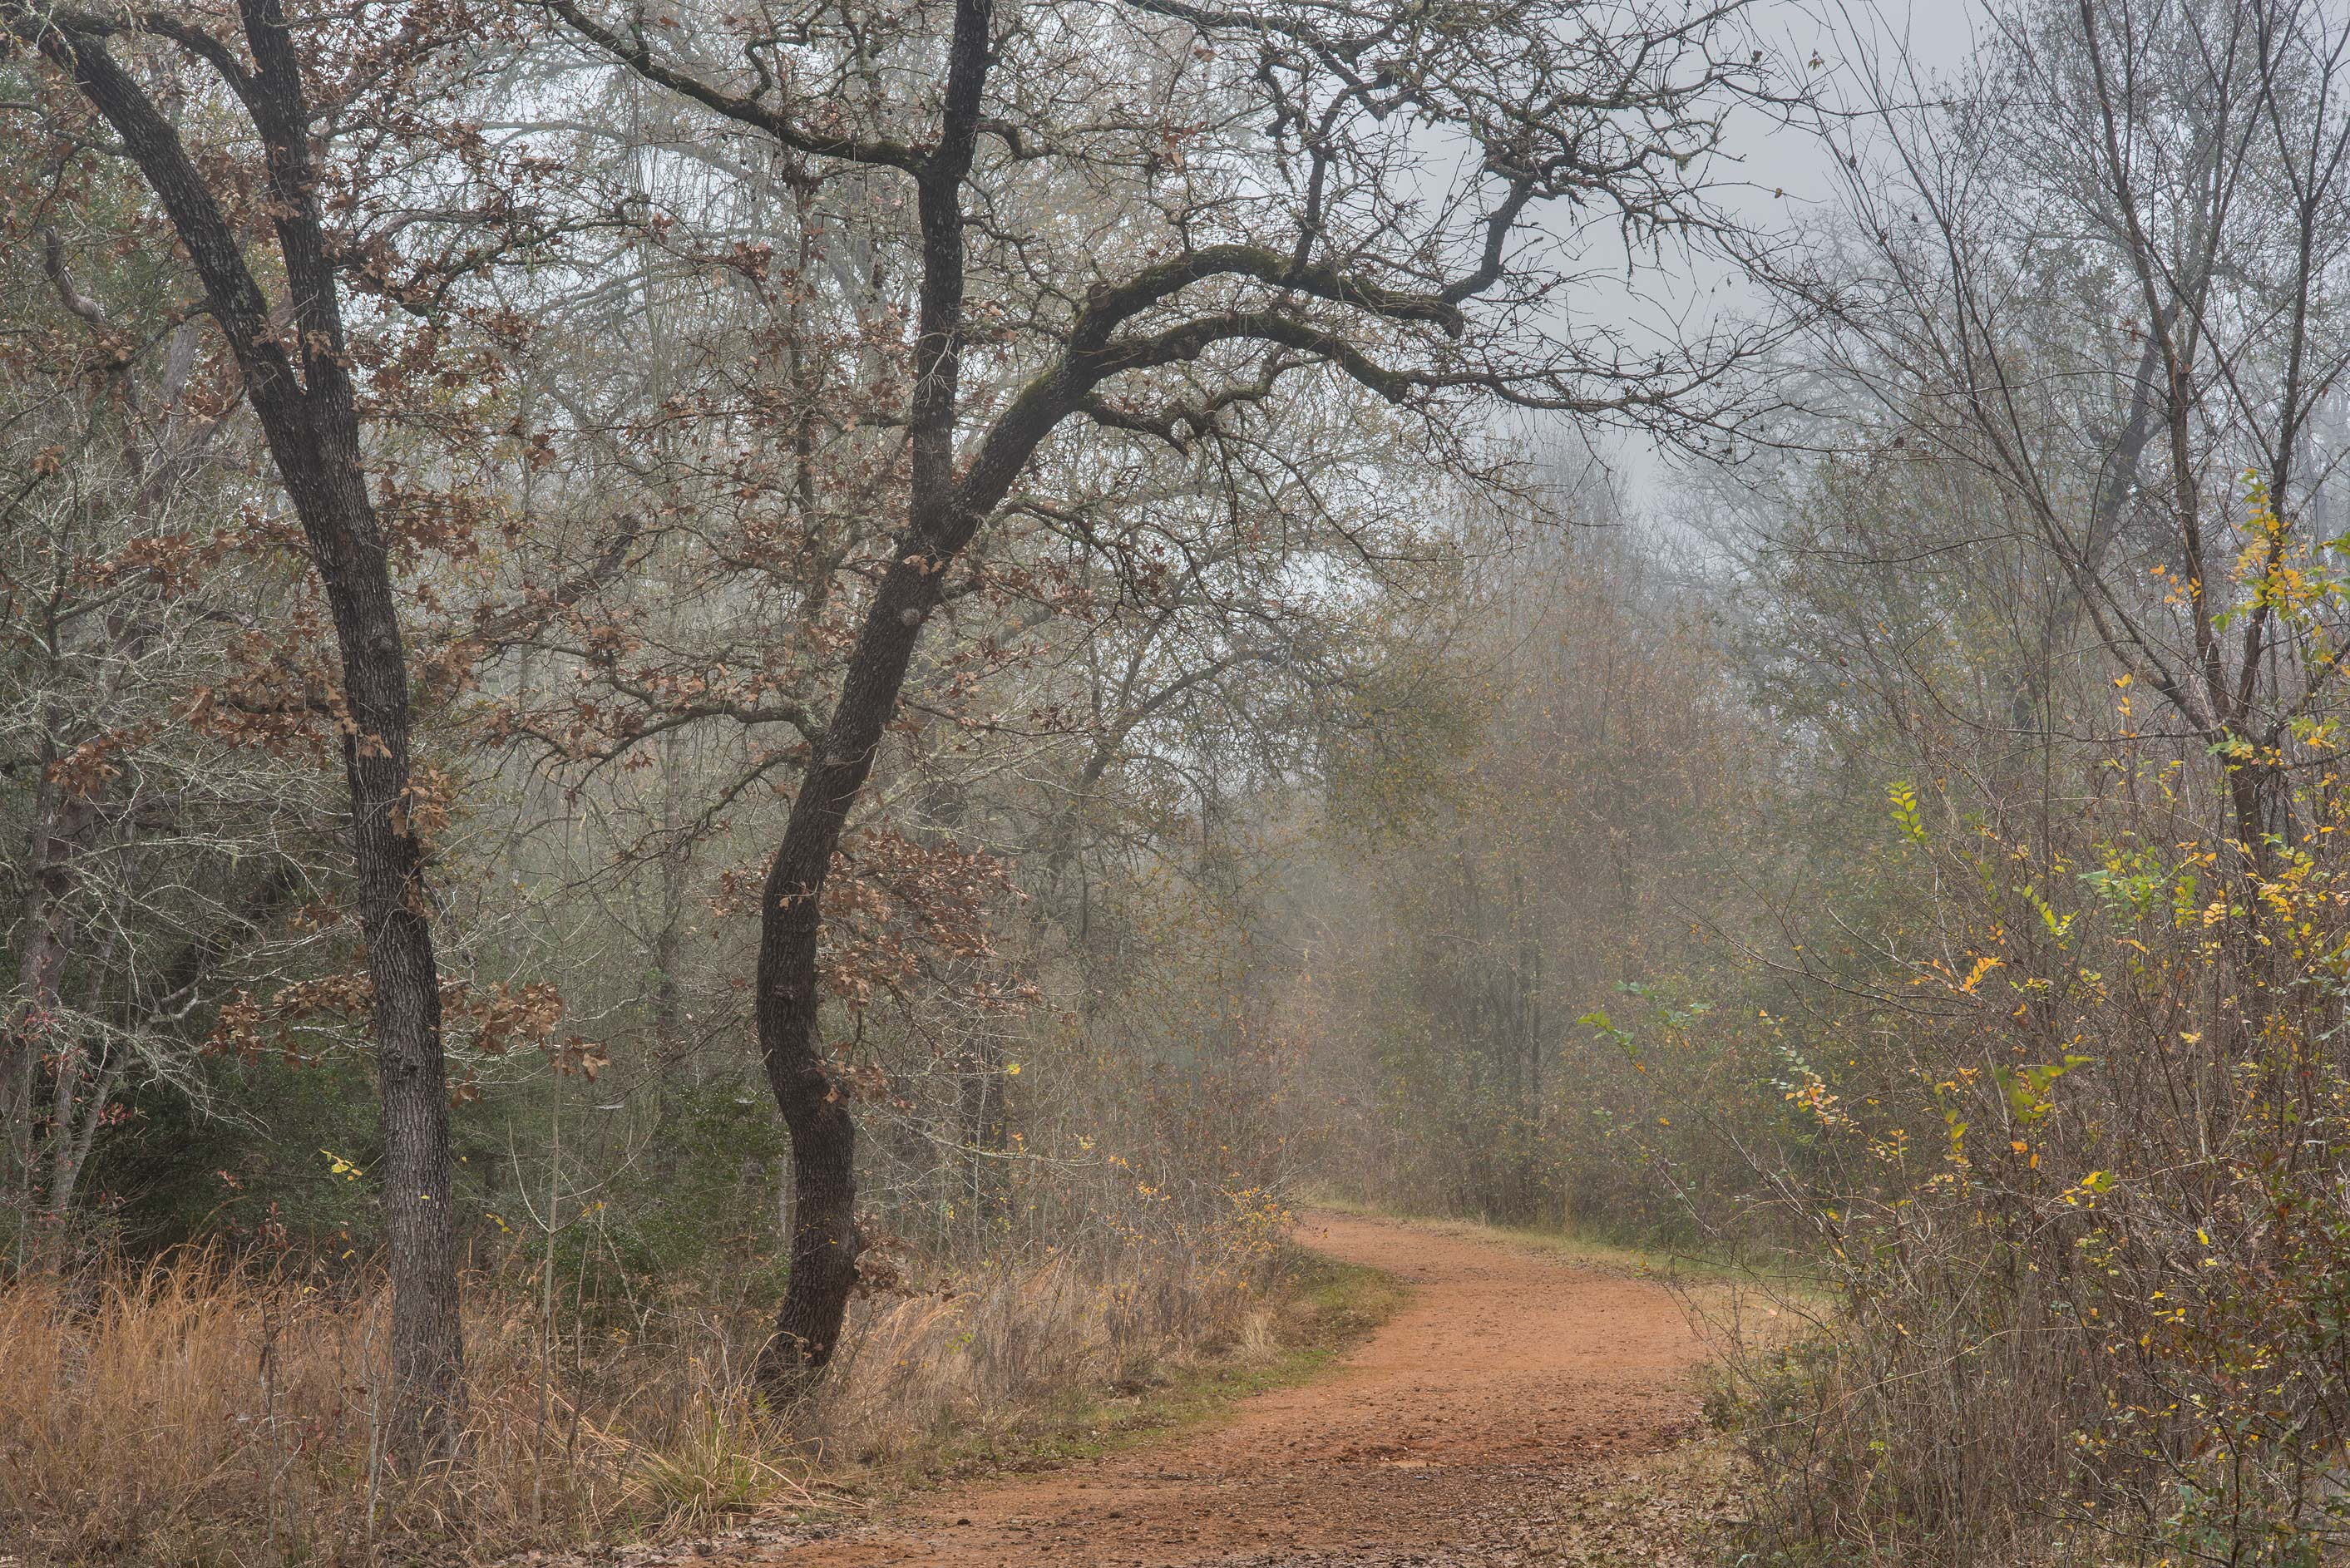 Oaks and a road in fog in Lick Creek Park. College Station, Texas